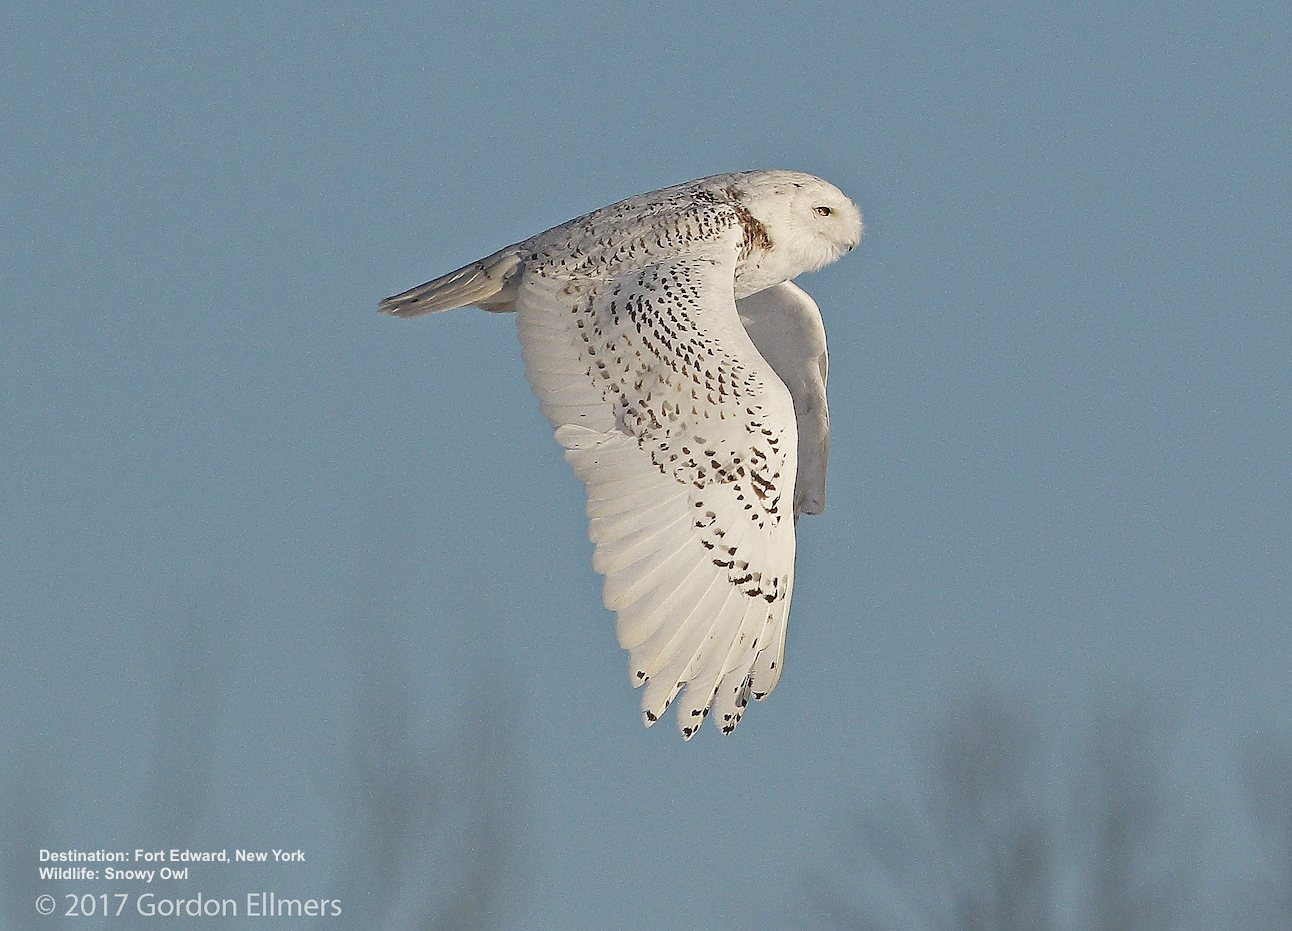 Finding Snowy Owls in New York State (also Short-Eared Owls)